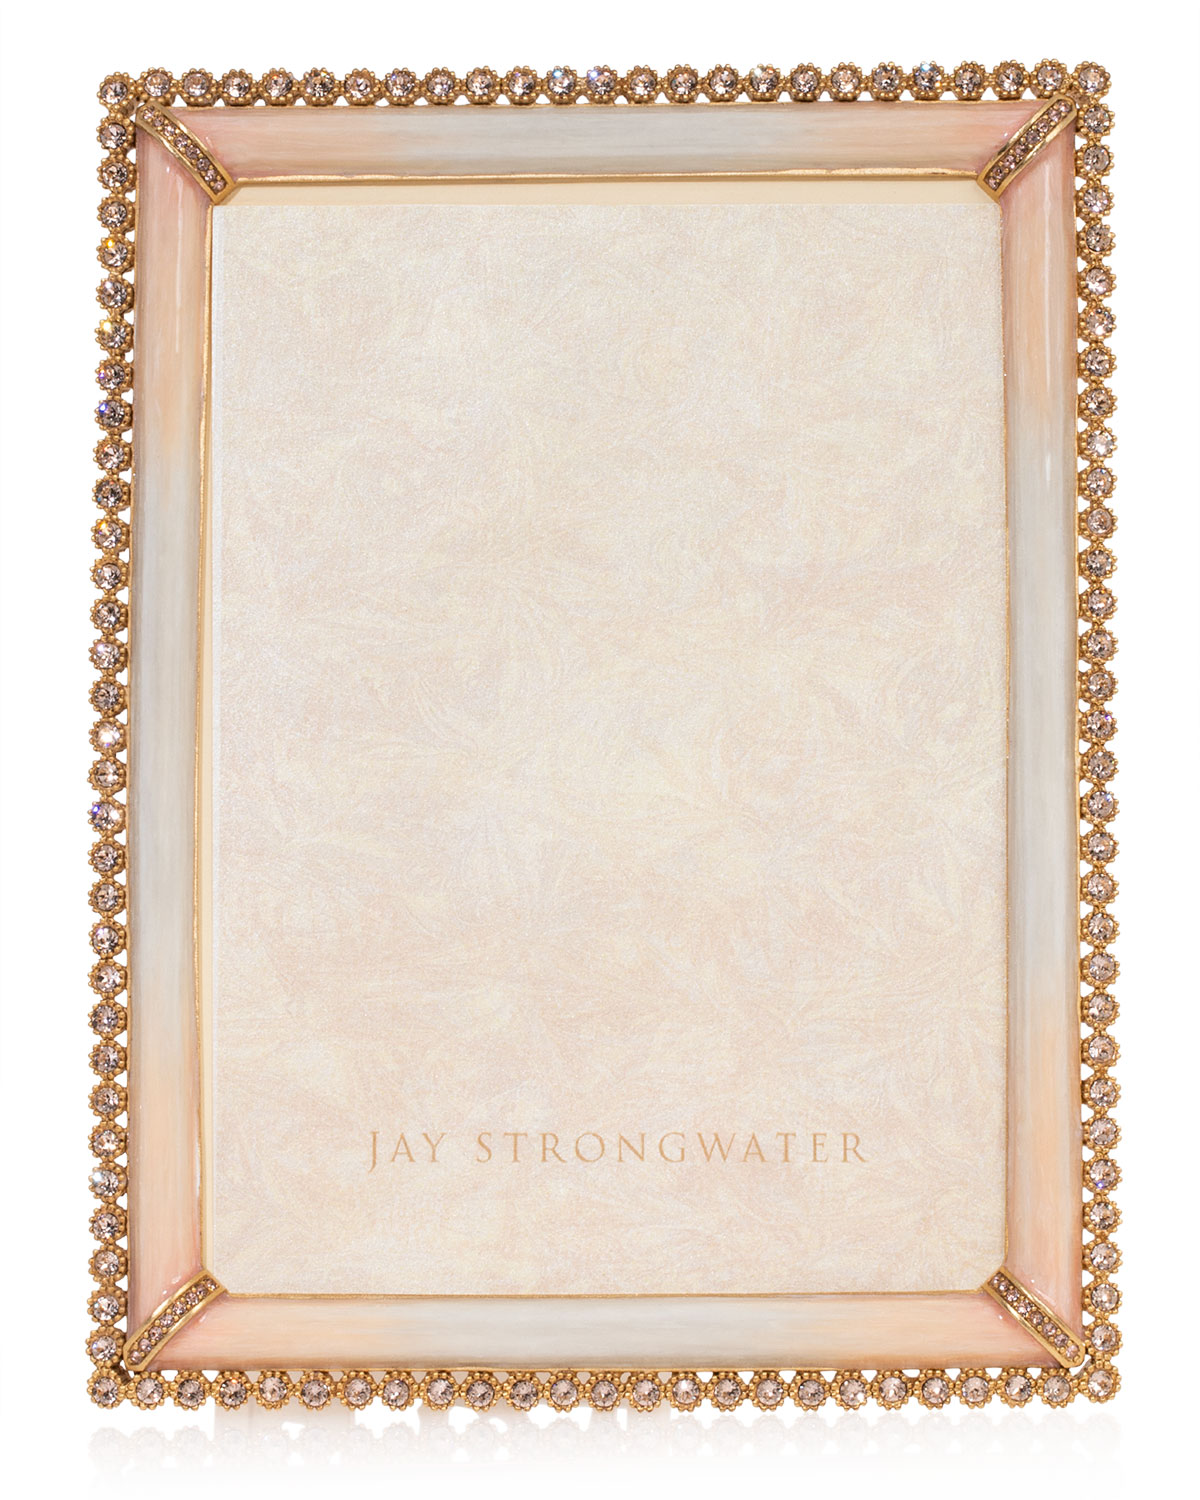 """Jay Strongwater STONE EDGE PICTURE FRAME, 5"""" X 7"""""""